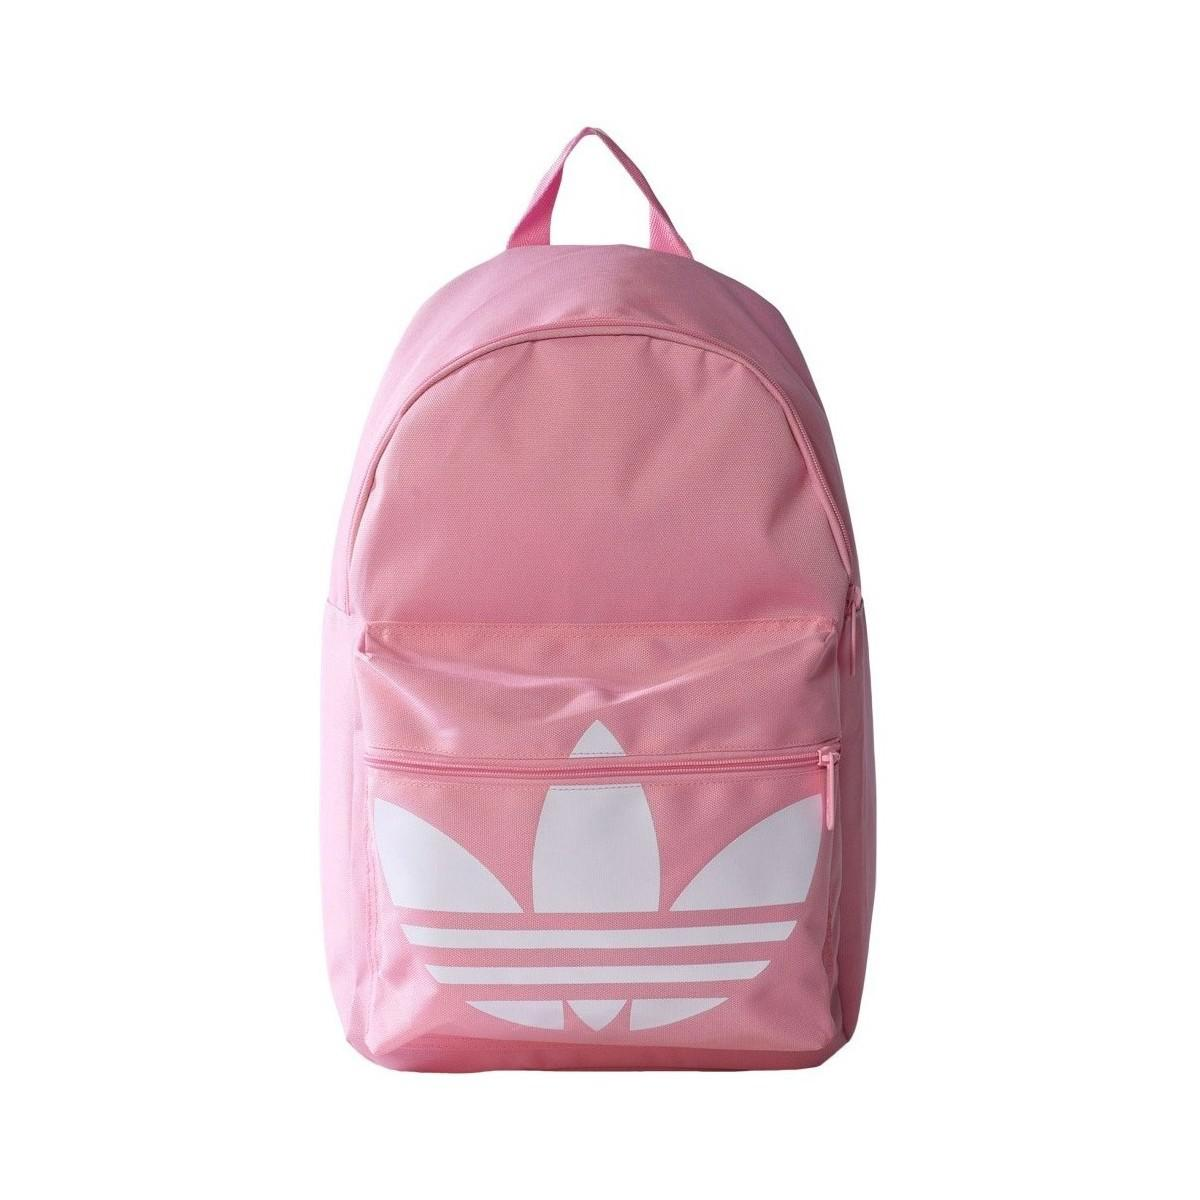 Adidas Originals Classic Trefoil Women s Backpack In Pink in Pink - Lyst 90c2b6c2a1